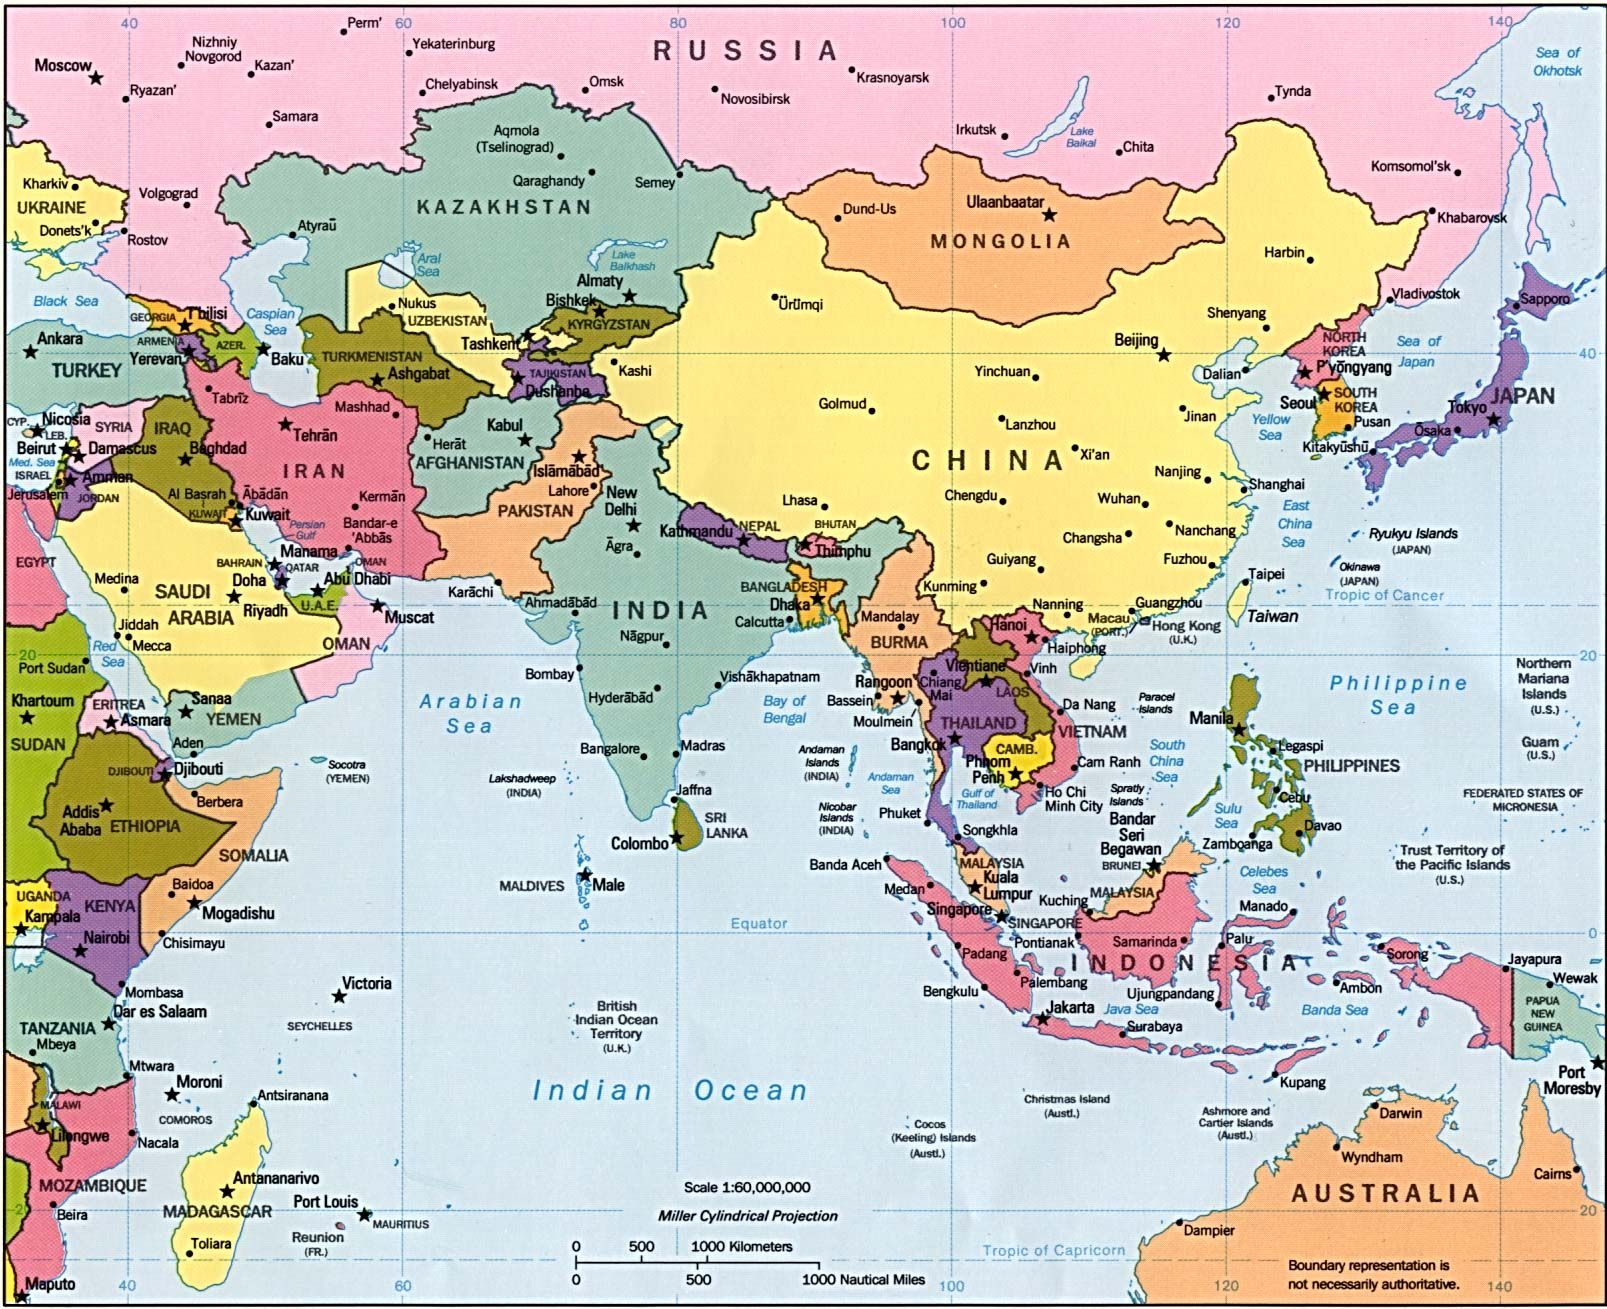 Map Of Asia With Cities African Countries Game Cities In Southwest Asia Maps Of Capital